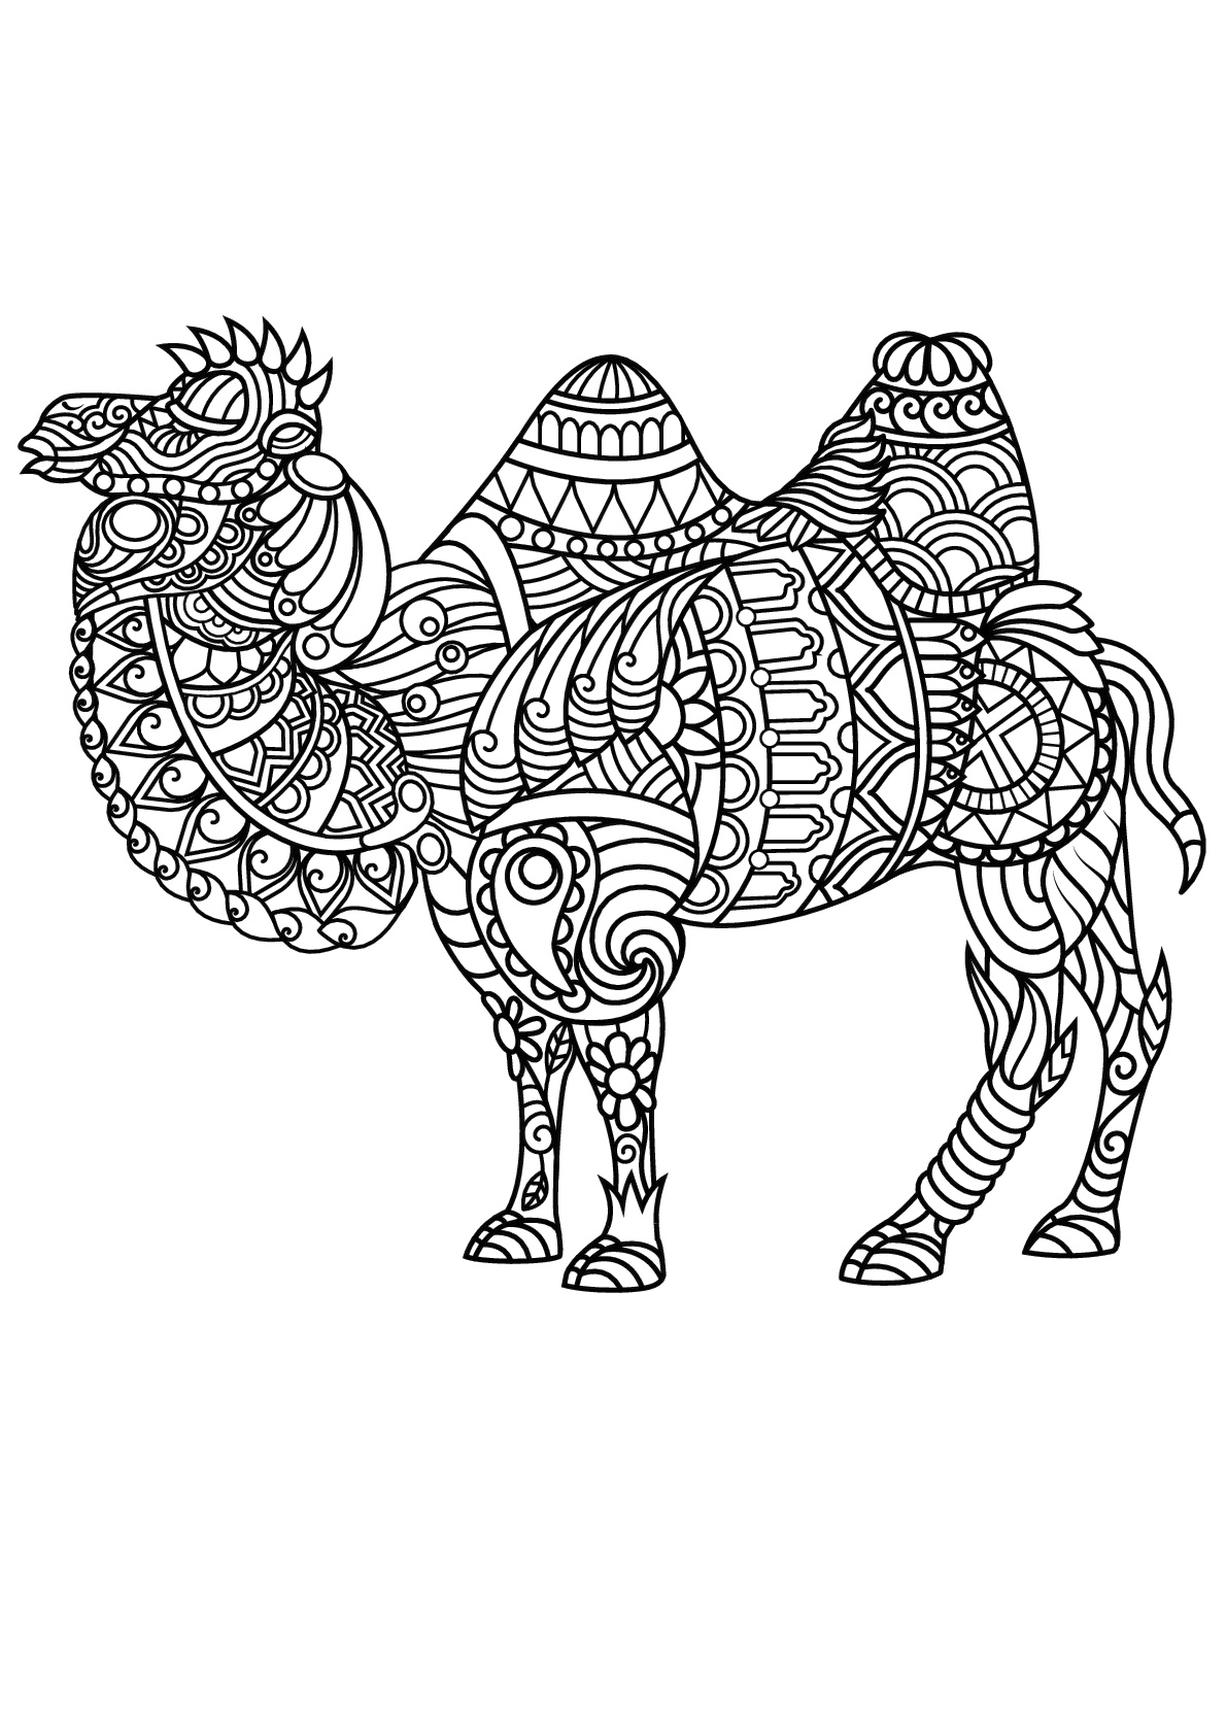 animal coloring sheets 30 free coloring pages a geometric animal coloring animal sheets coloring